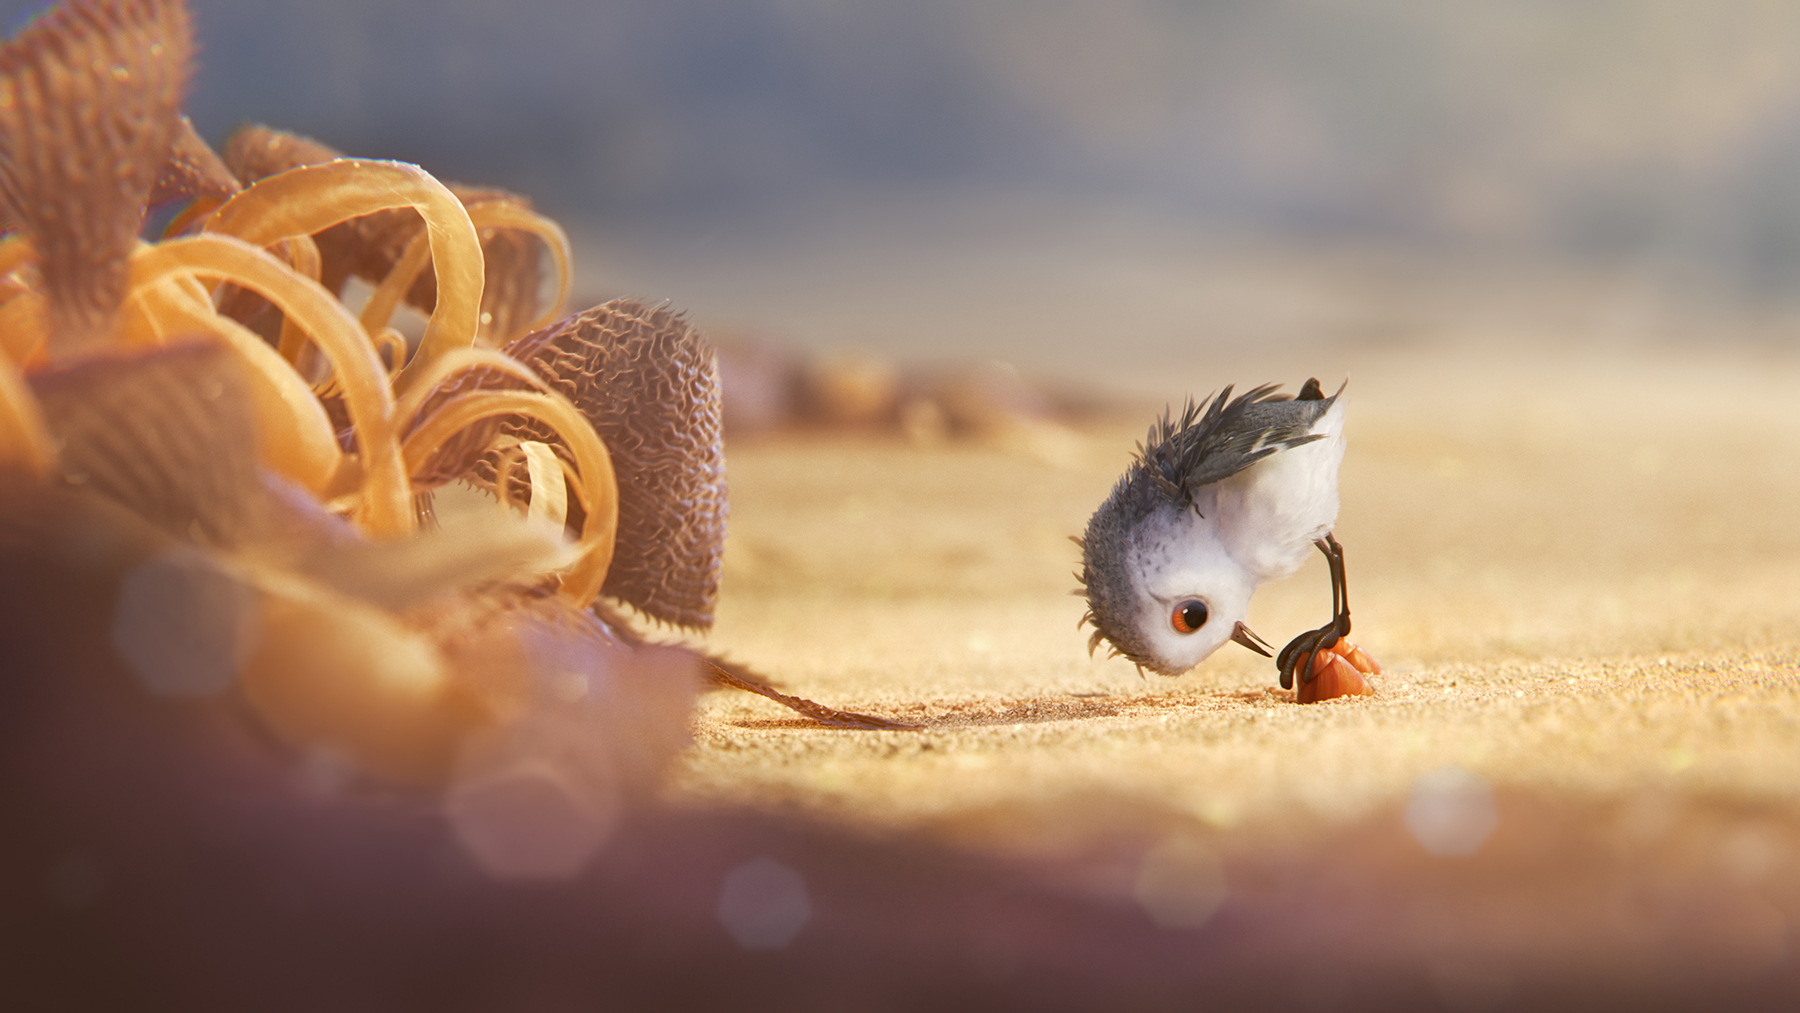 """Screen shot from """"Piper"""", a short film by Pixar."""